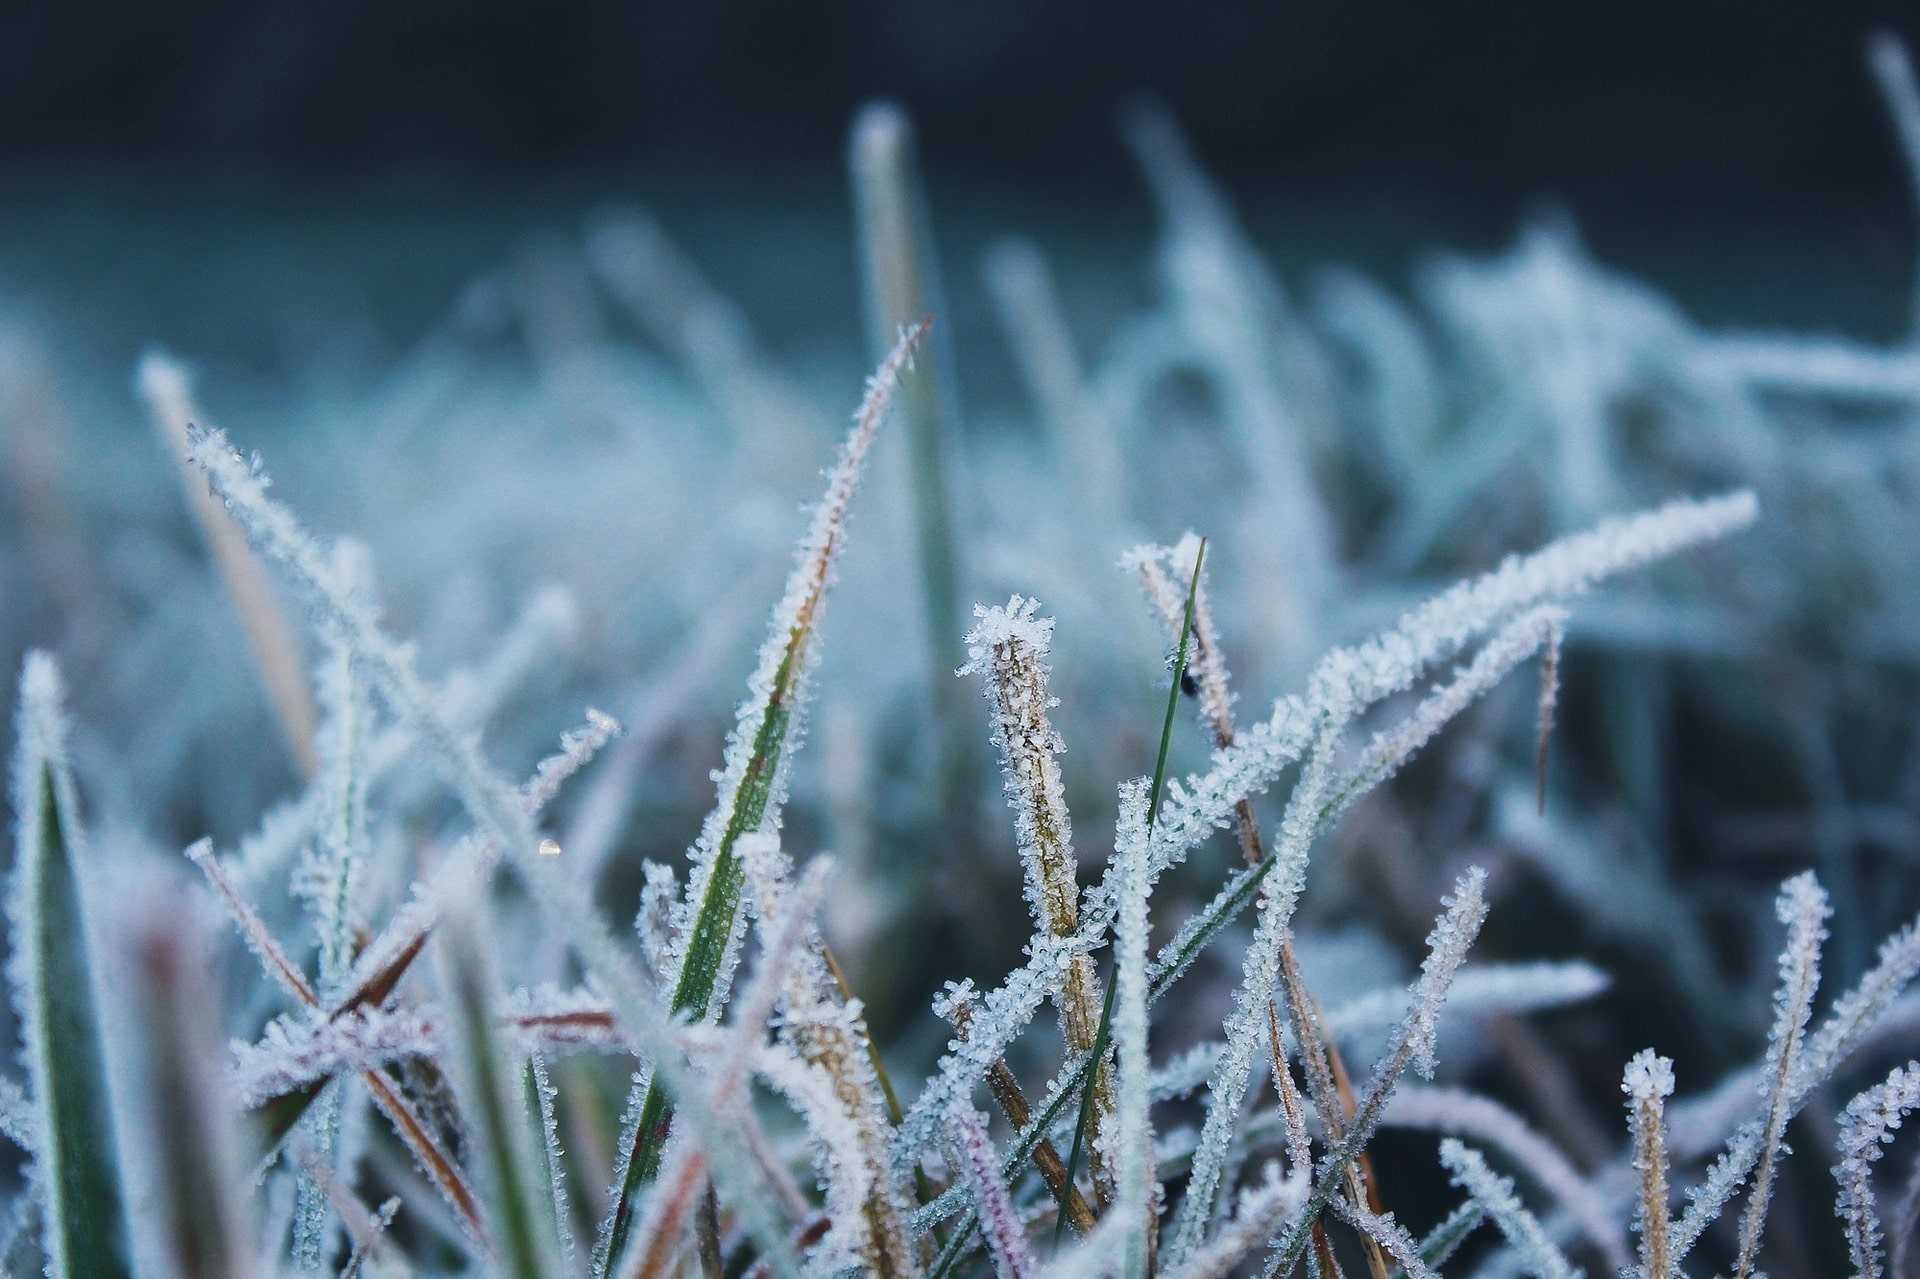 Frost on a lawn.